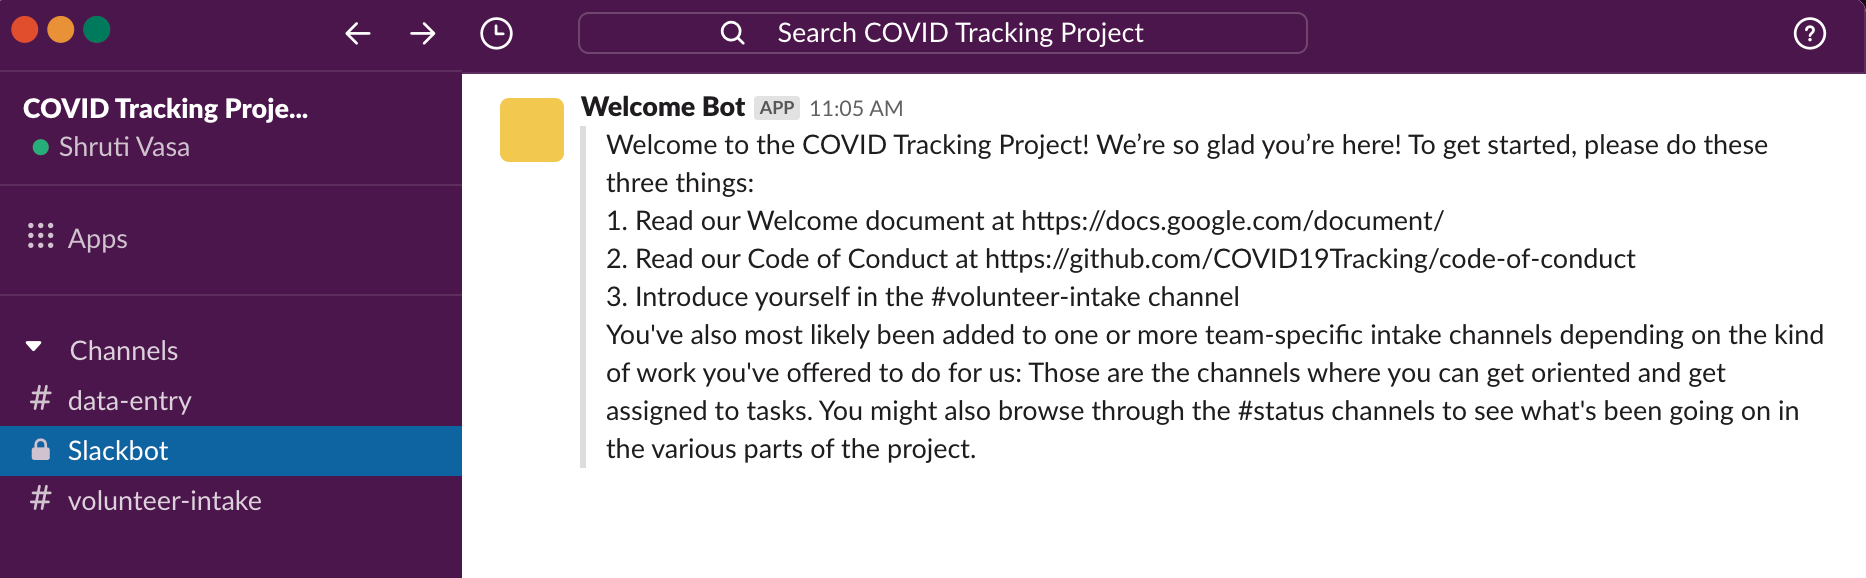 Welcome bot welcoming new volunteer to the COVID Tracking Project